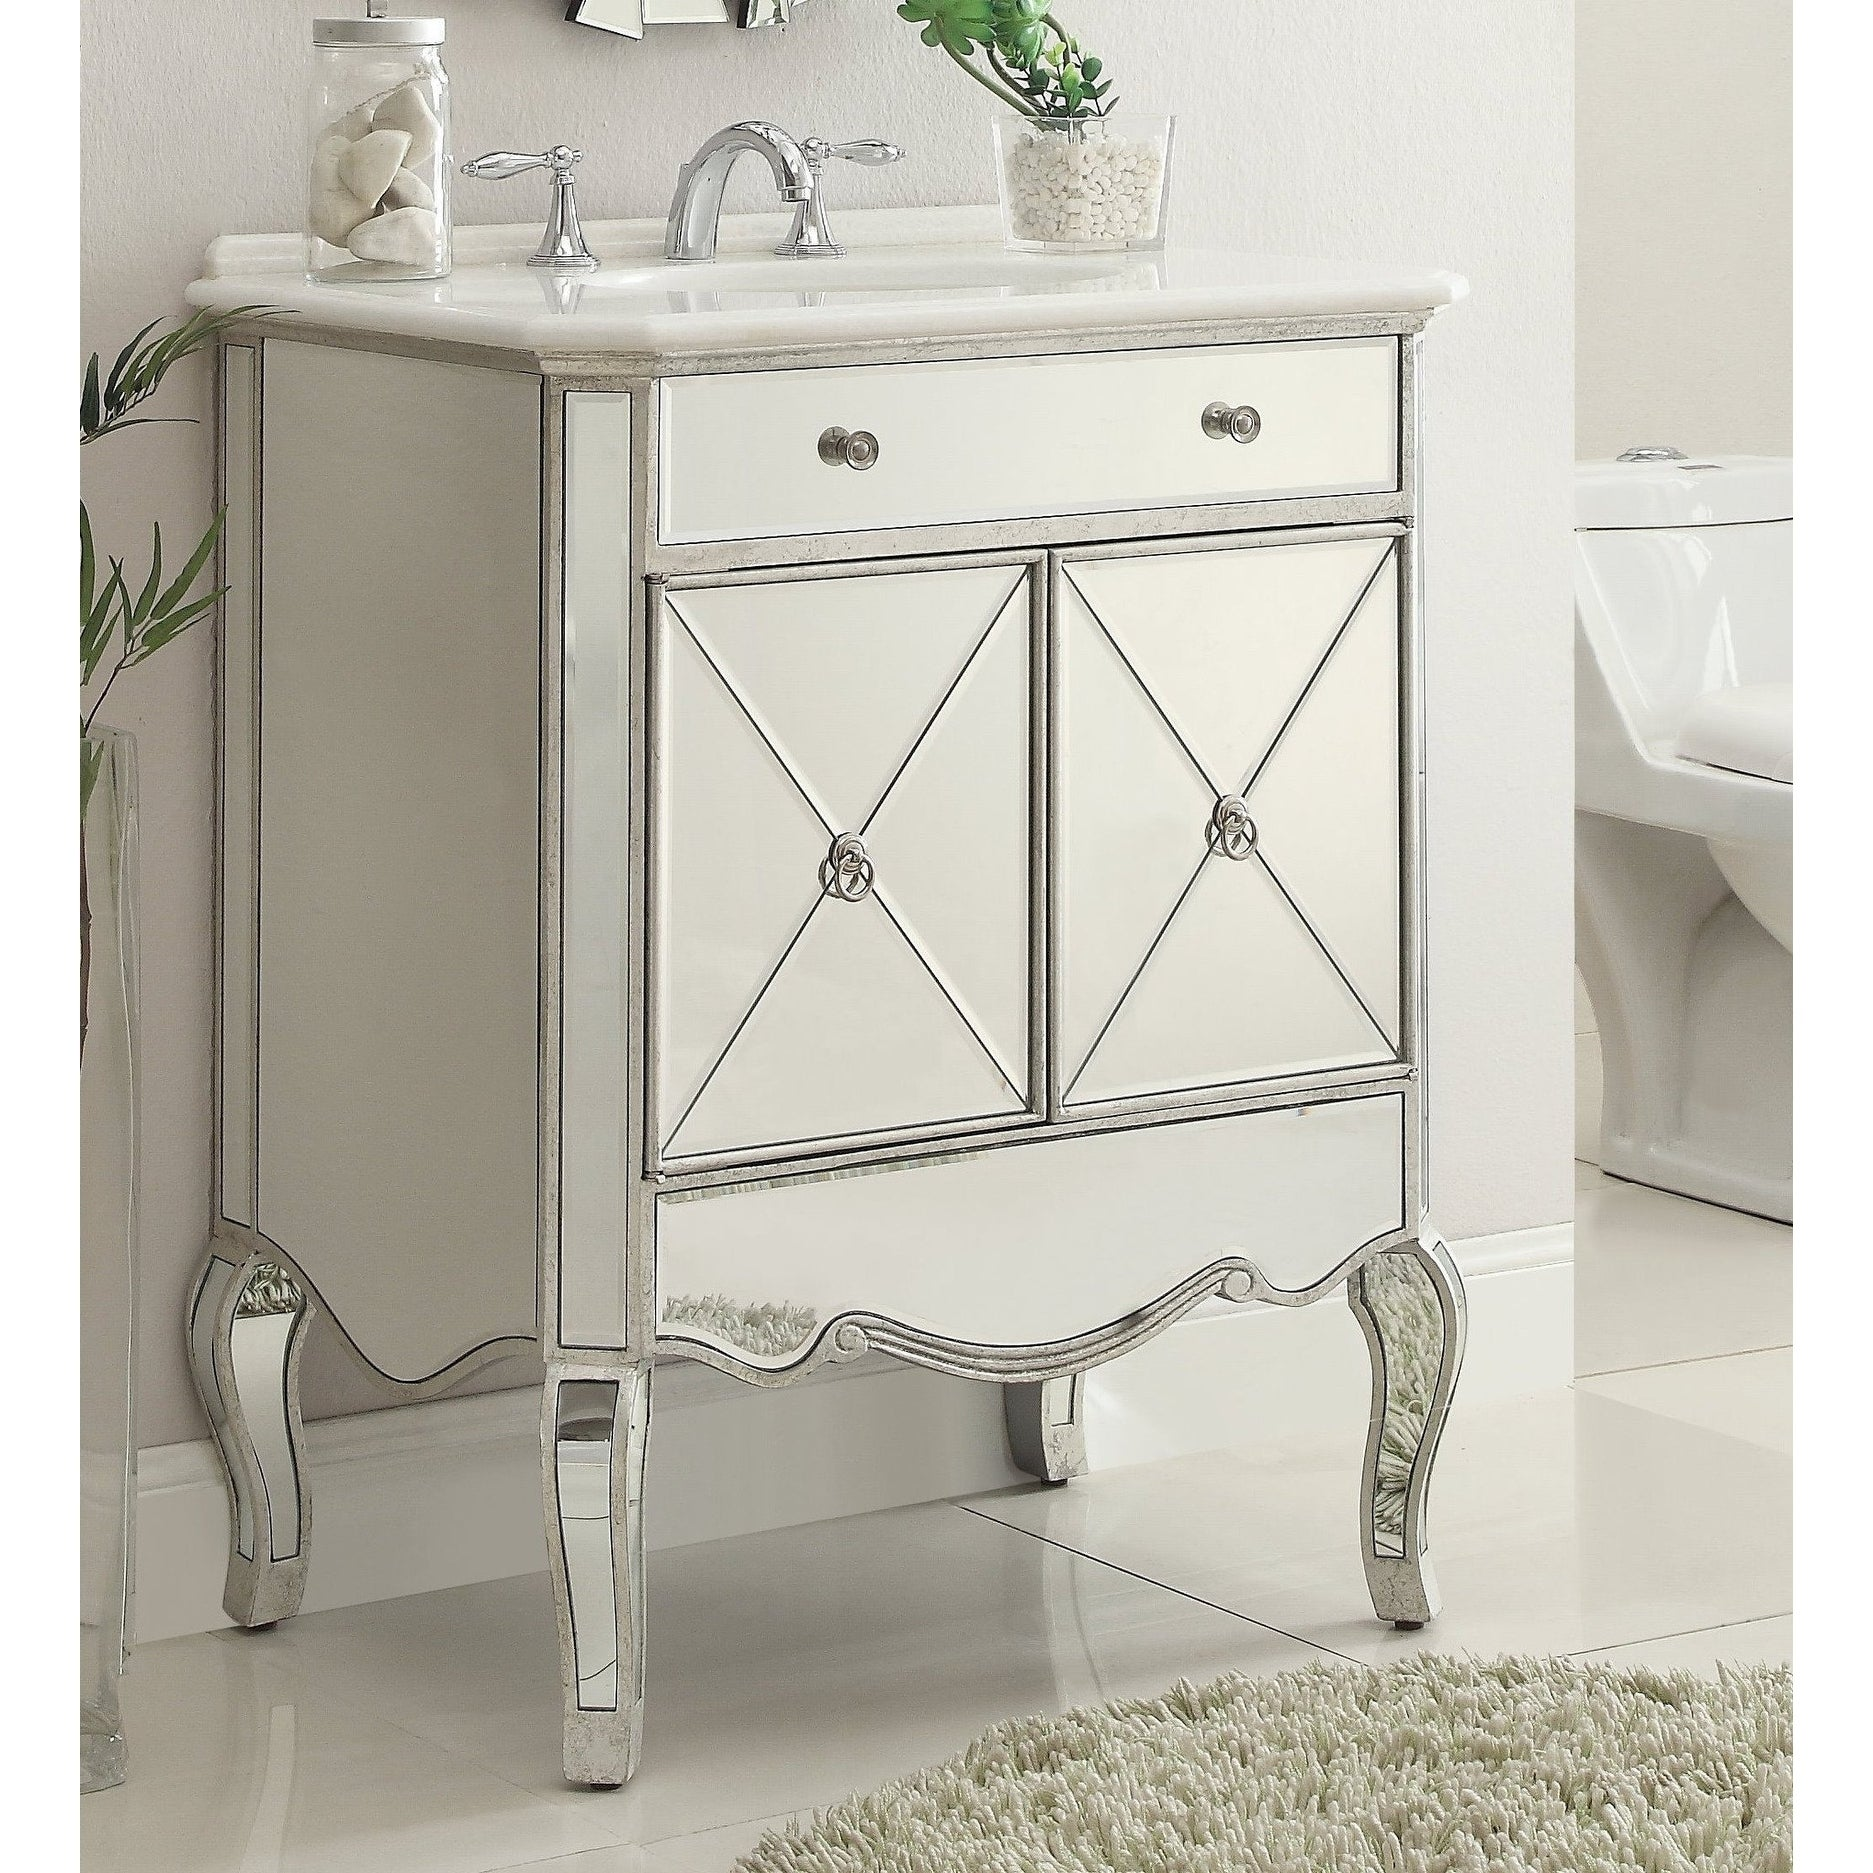 30 Benton Collection Adelisa Contemporary Mirrored Bathroom Vanity Overstock 22355692